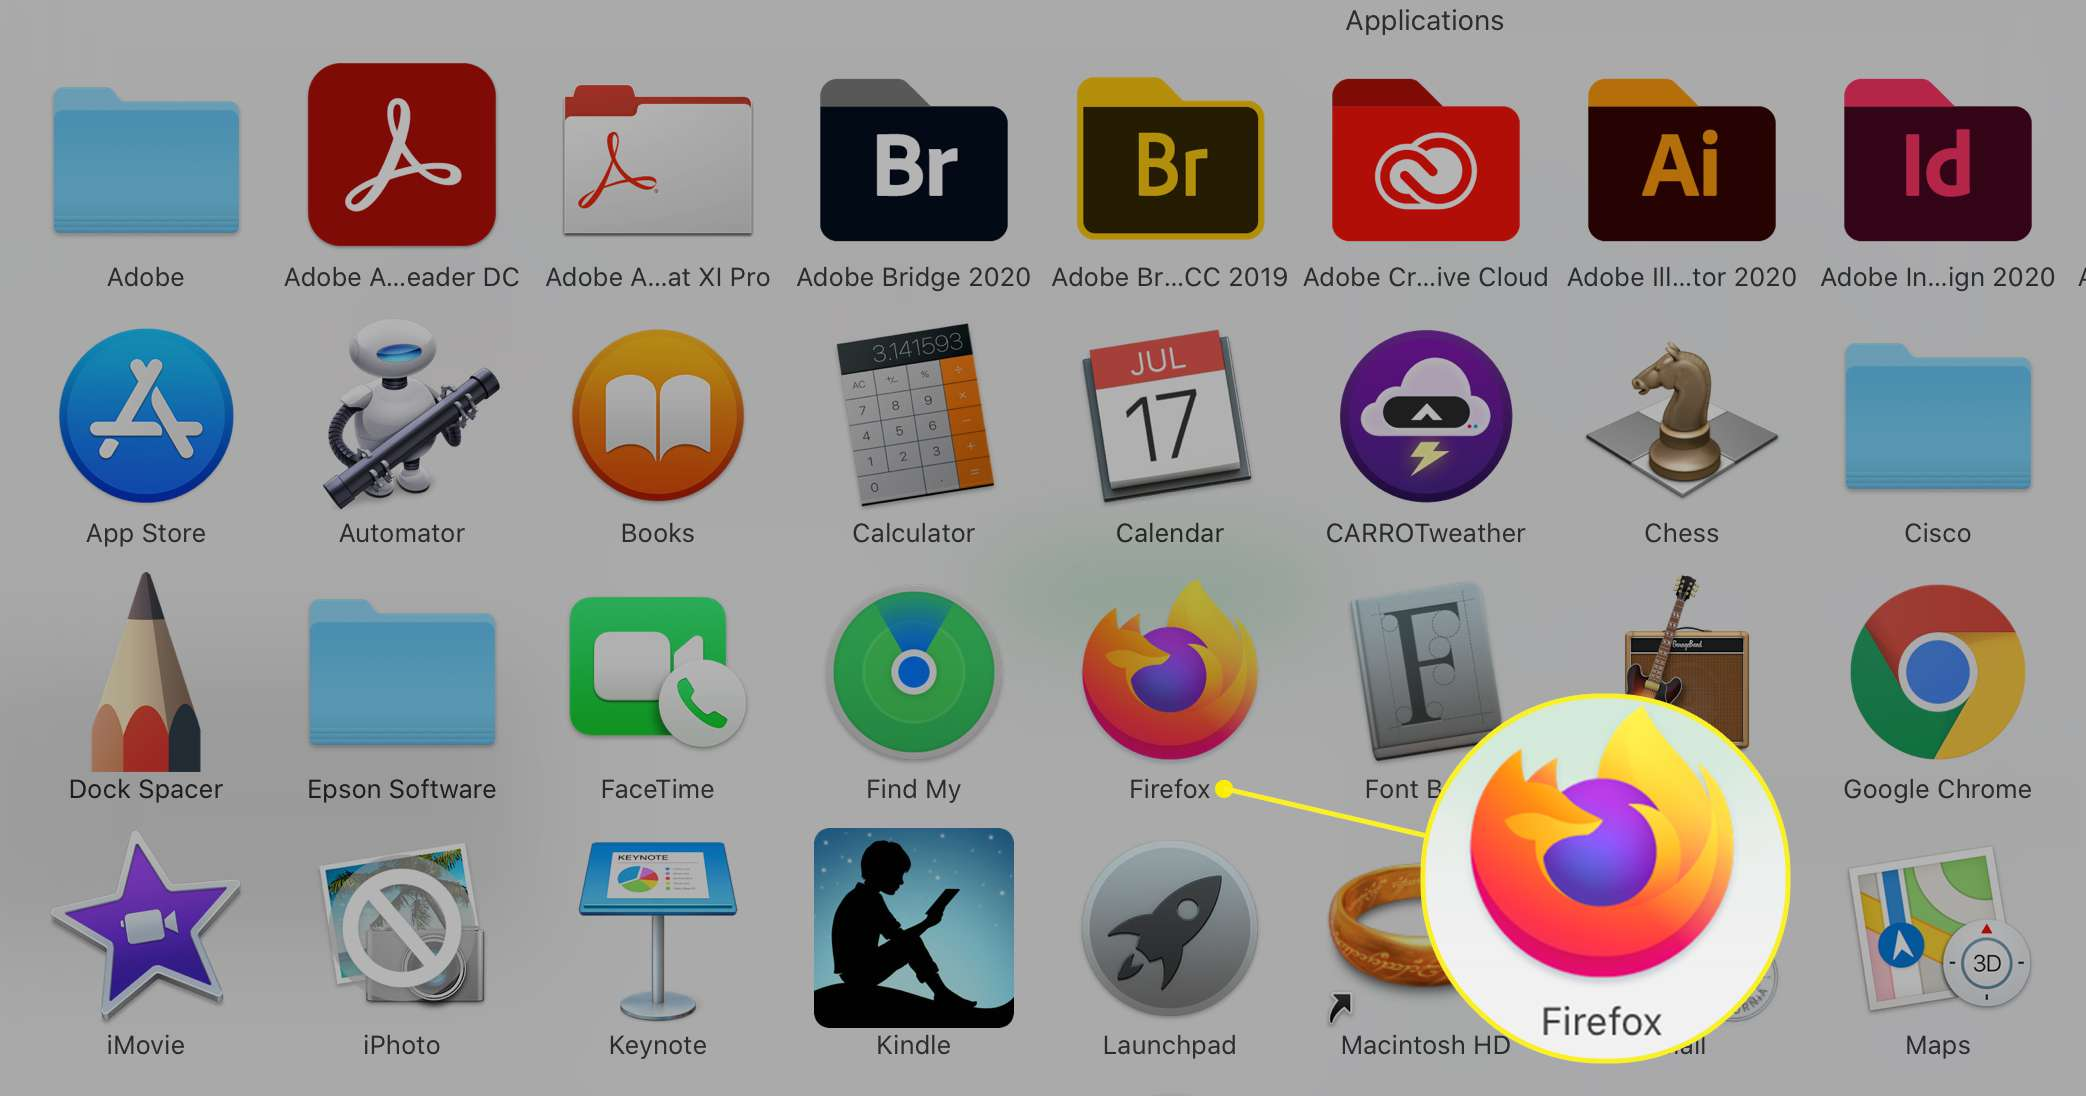 macOS Applications folder with FIrefox app highlighted